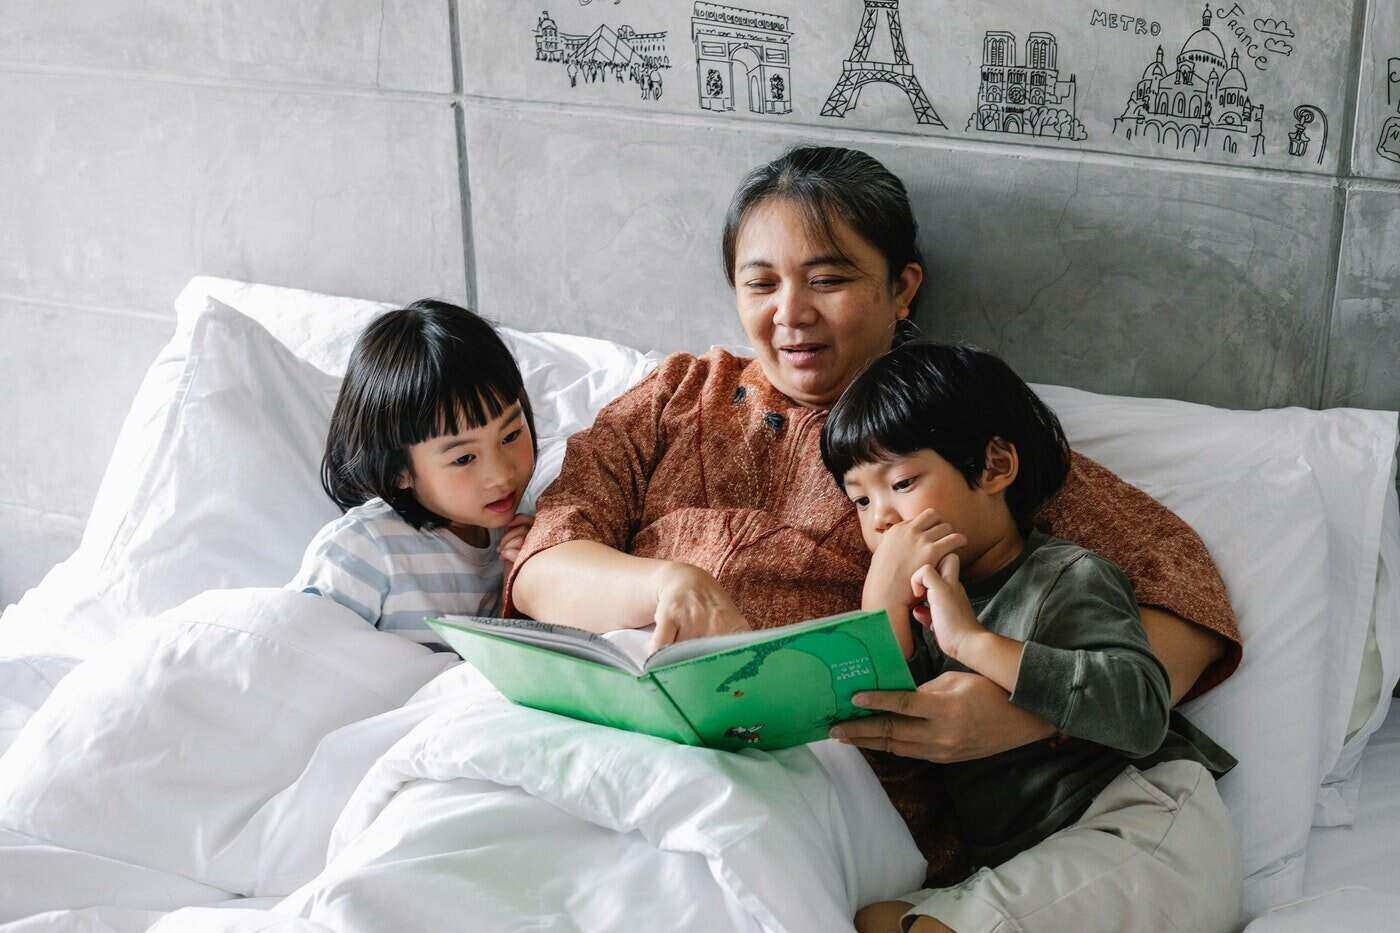 mother reading to two kids in bed - the work life balancing act